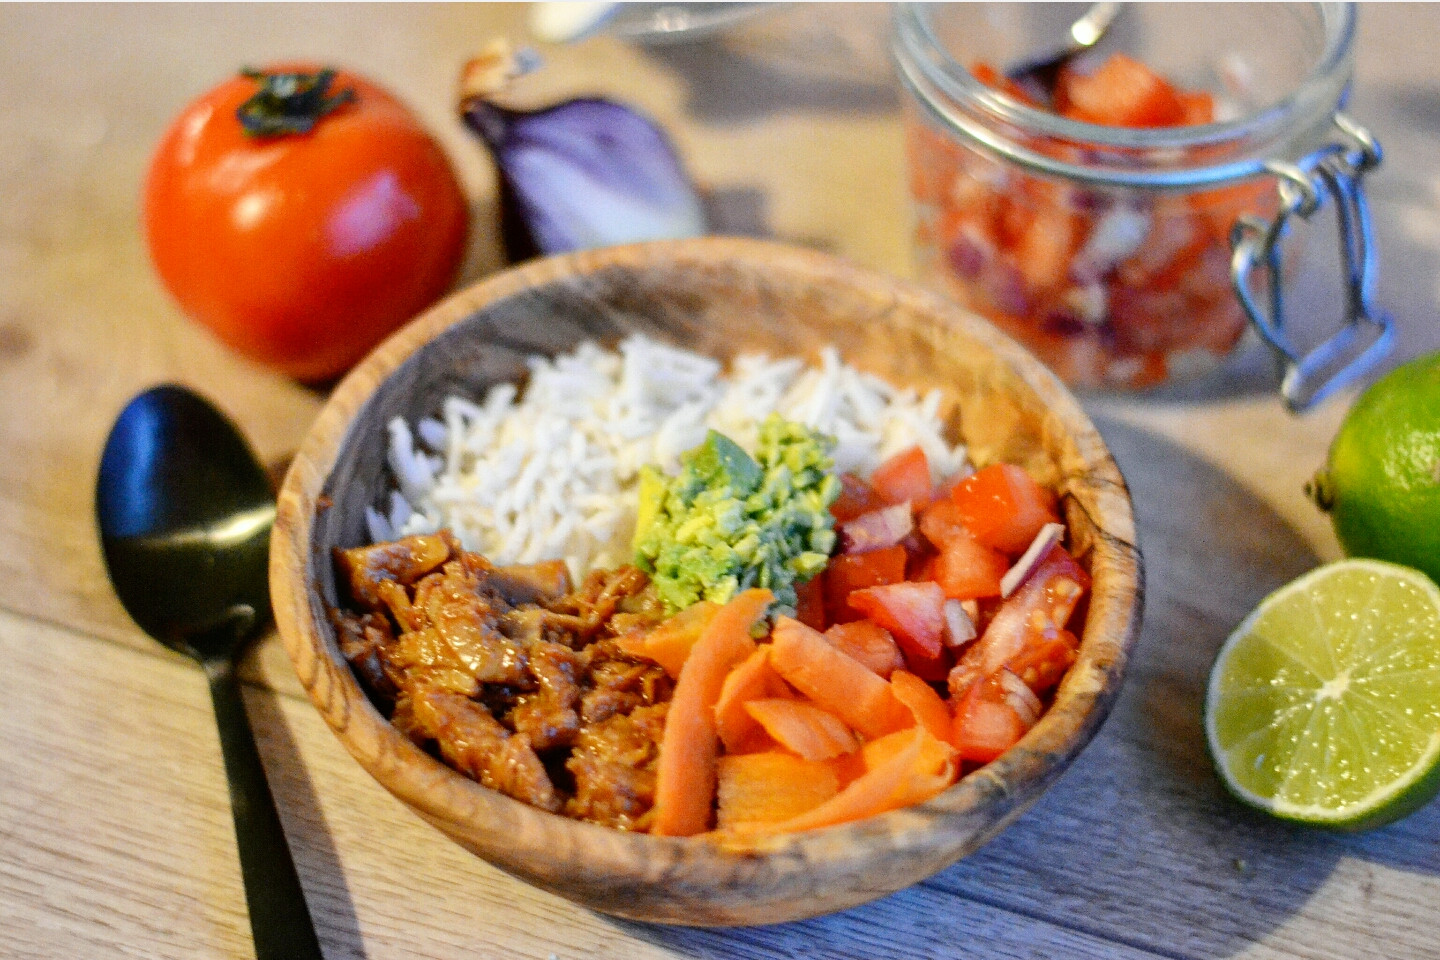 Healthy Side Dishes For Pulled Pork  Vegan pulled pork Mexican style Anne Travel Foo